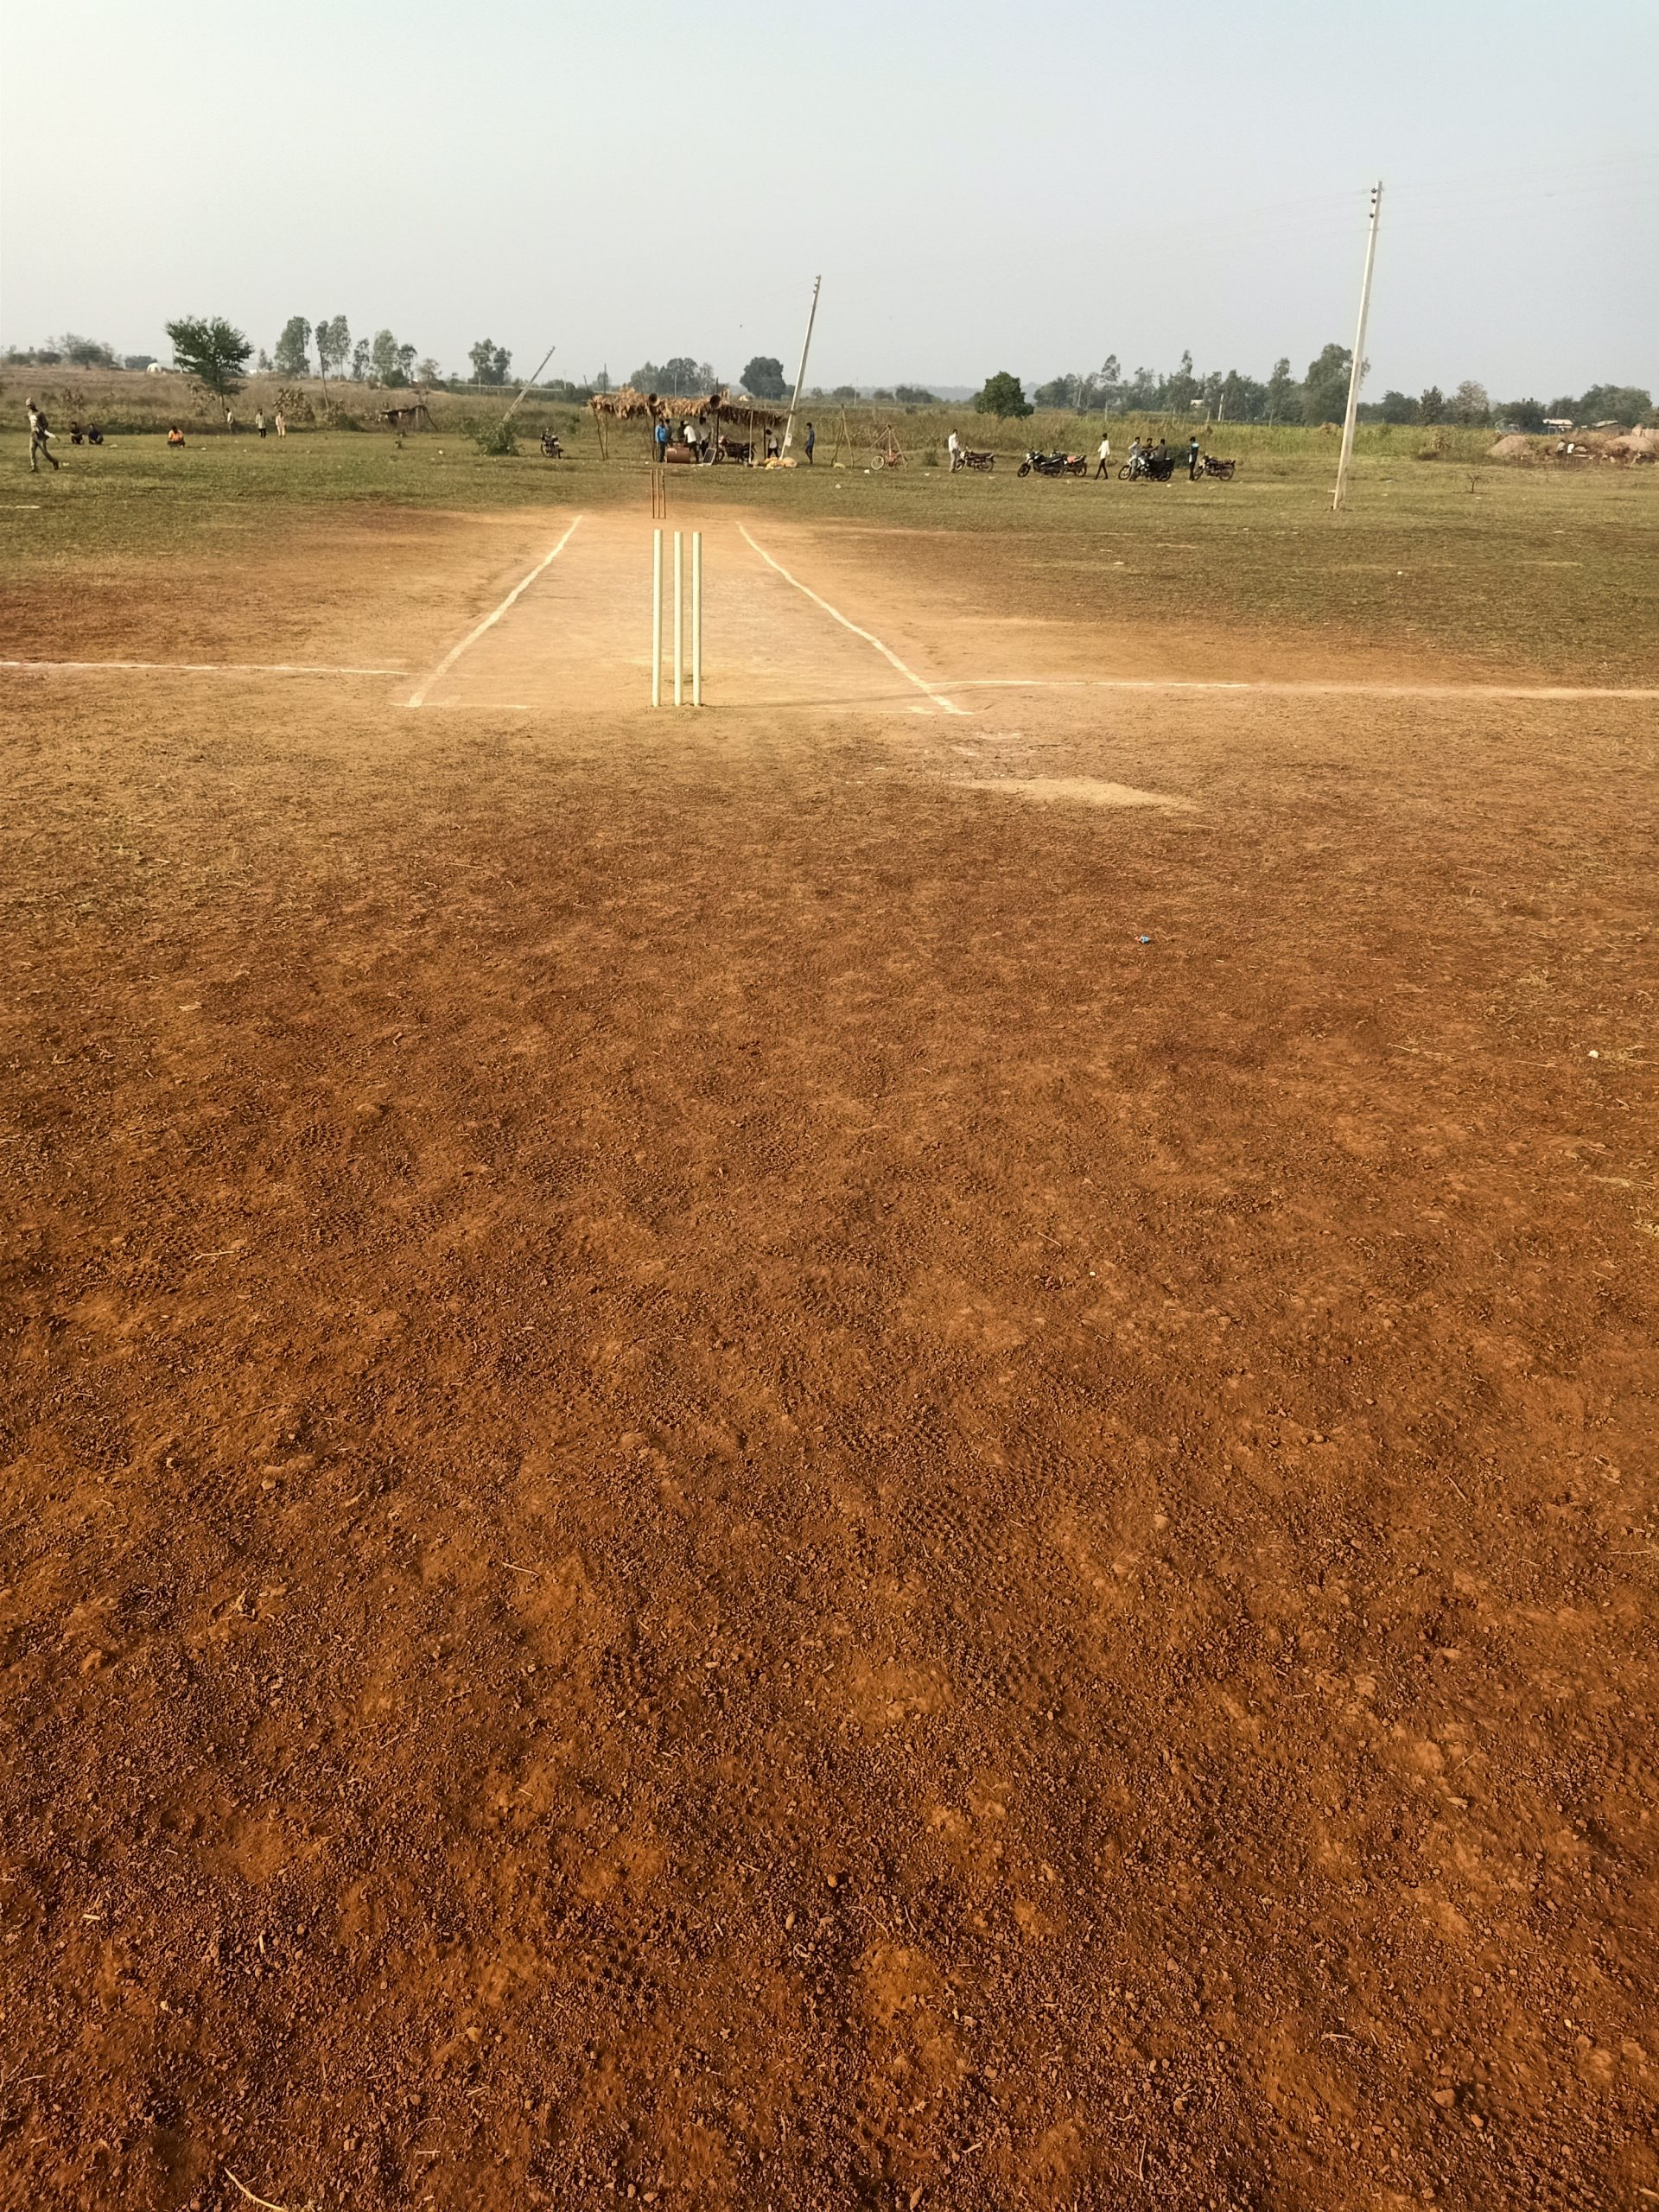 Dirt on a cricket pitch